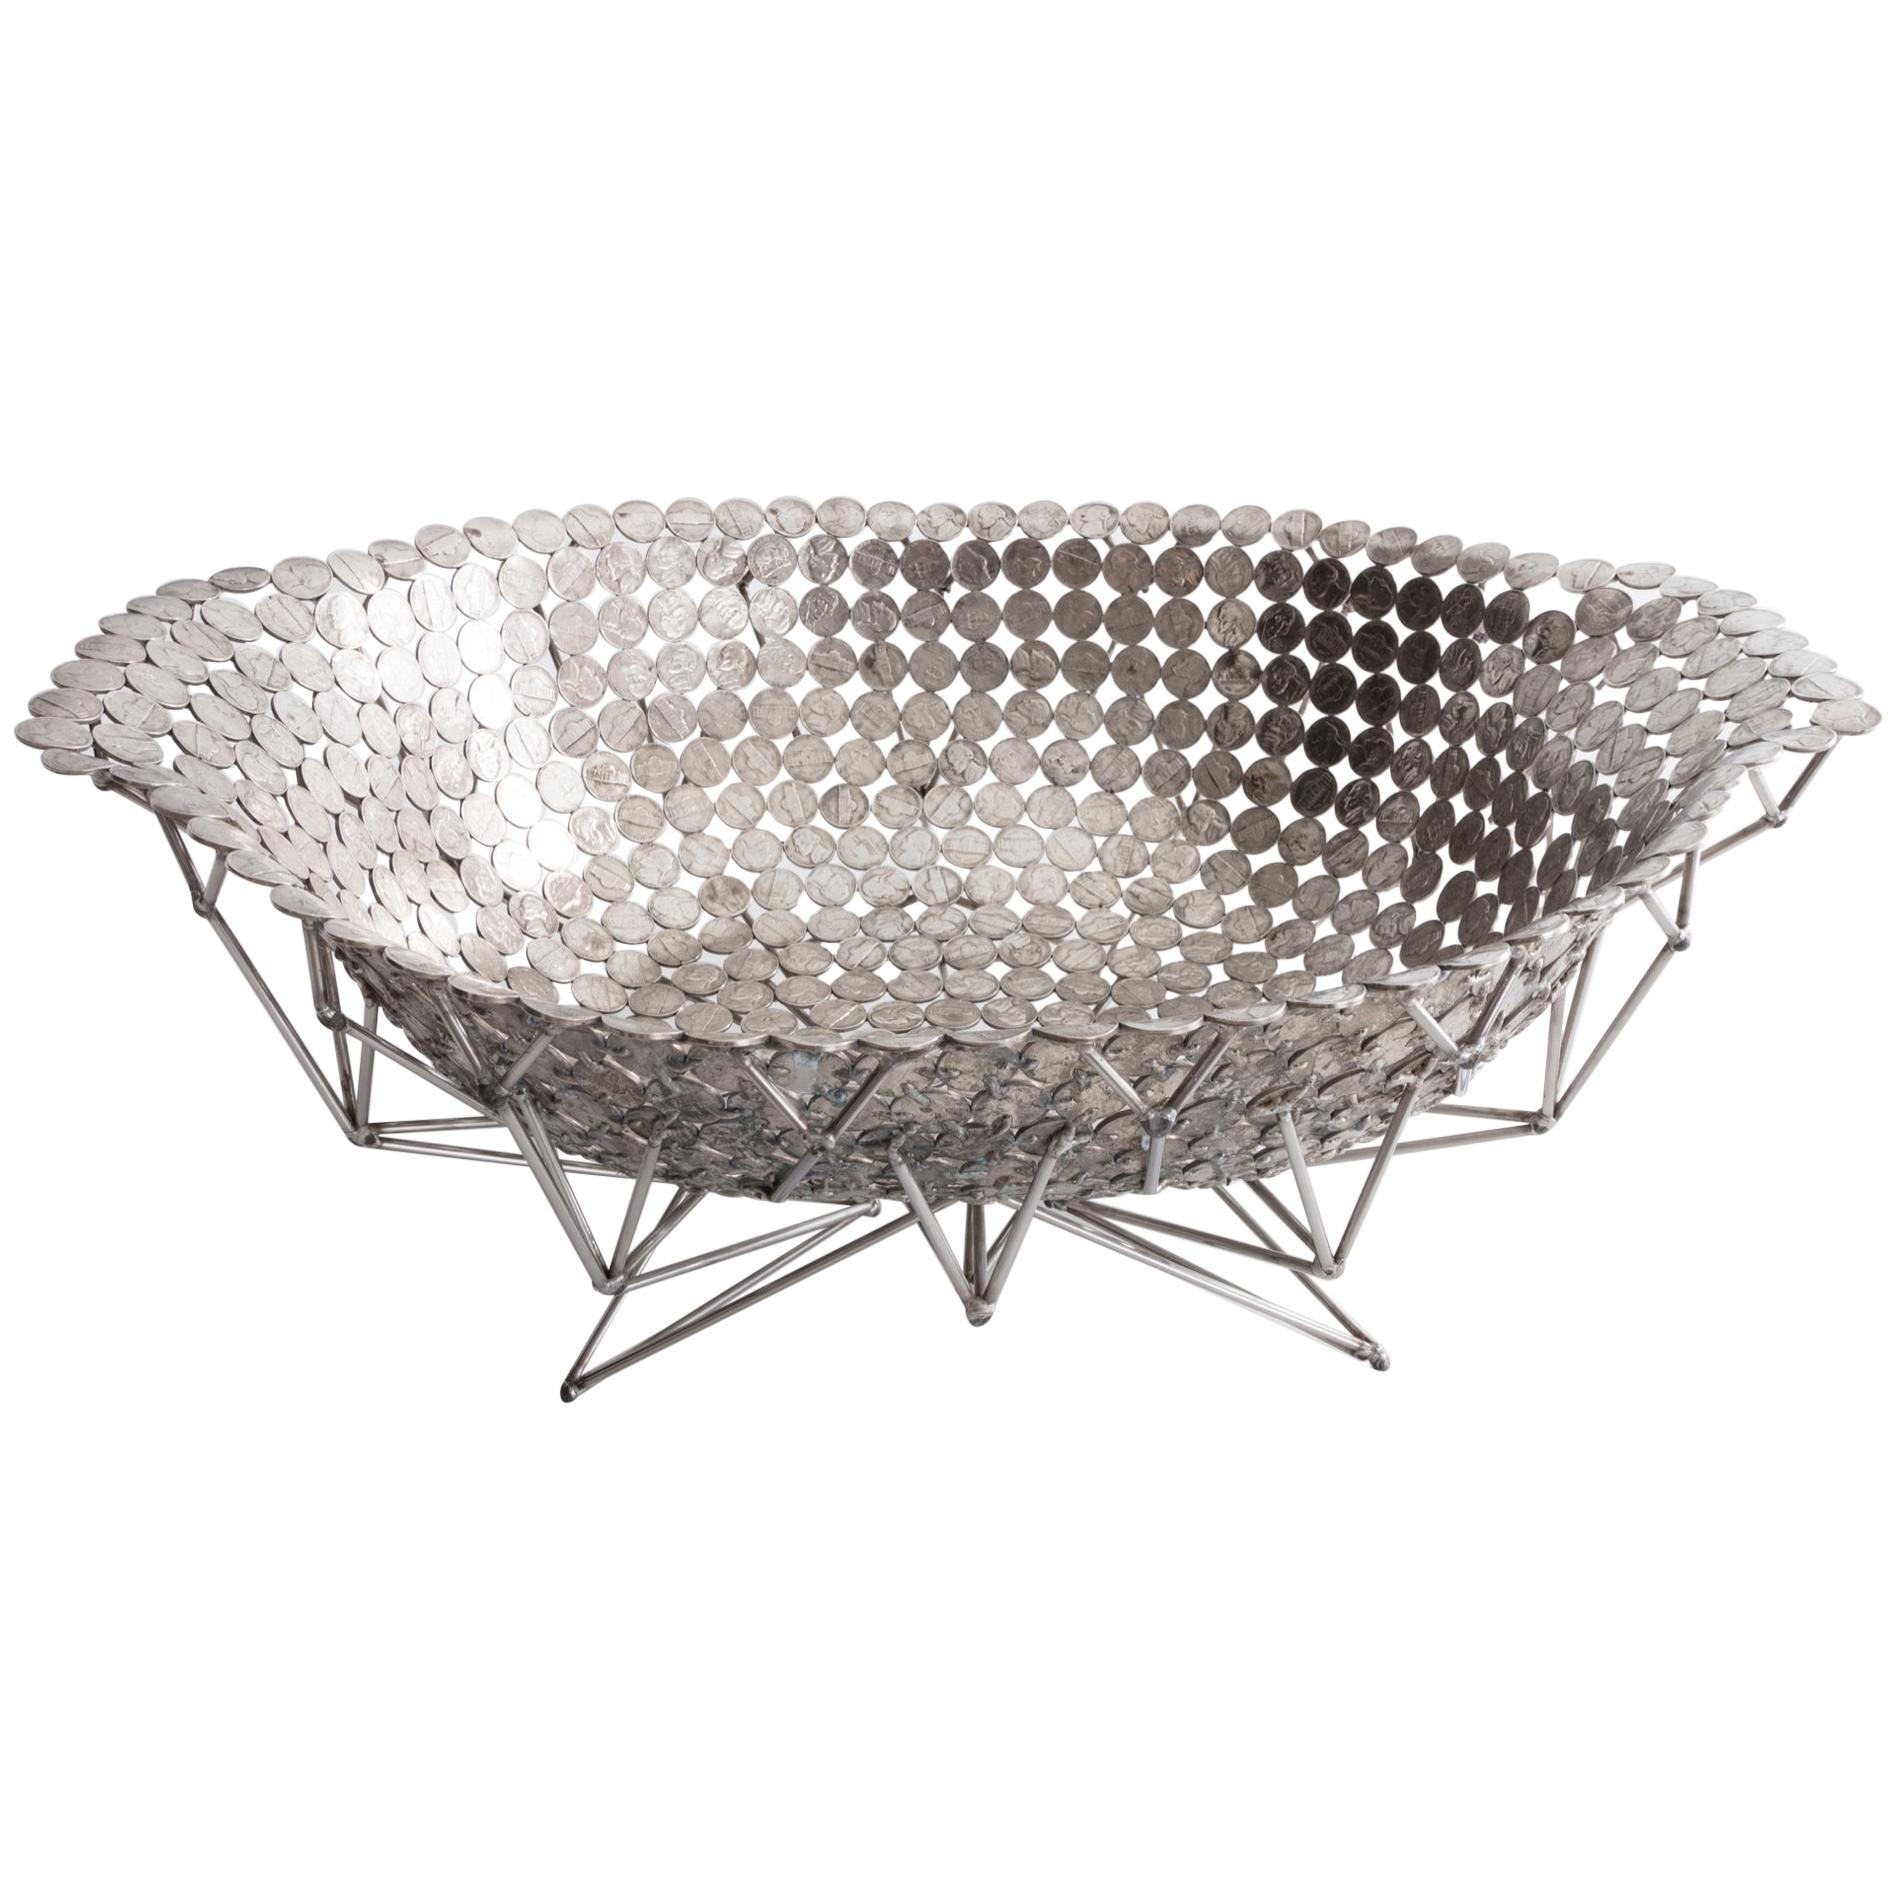 Large Bowl in Nickel with Stainless Steel Base by Johnny Swing, 2018